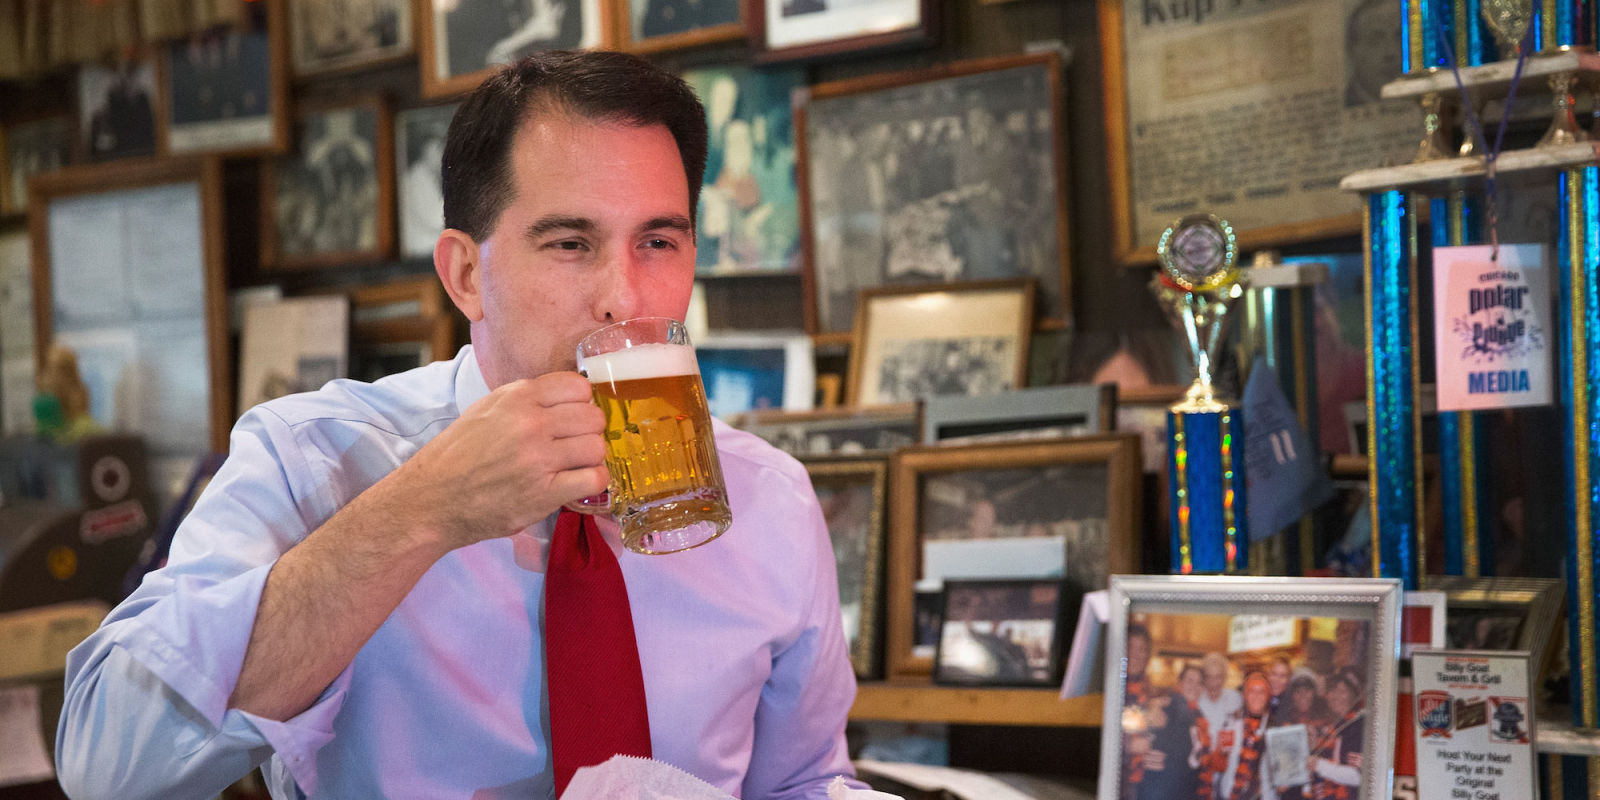 In Scott Walker's Wisconsin, the First Amendment Only Applies to Certain People